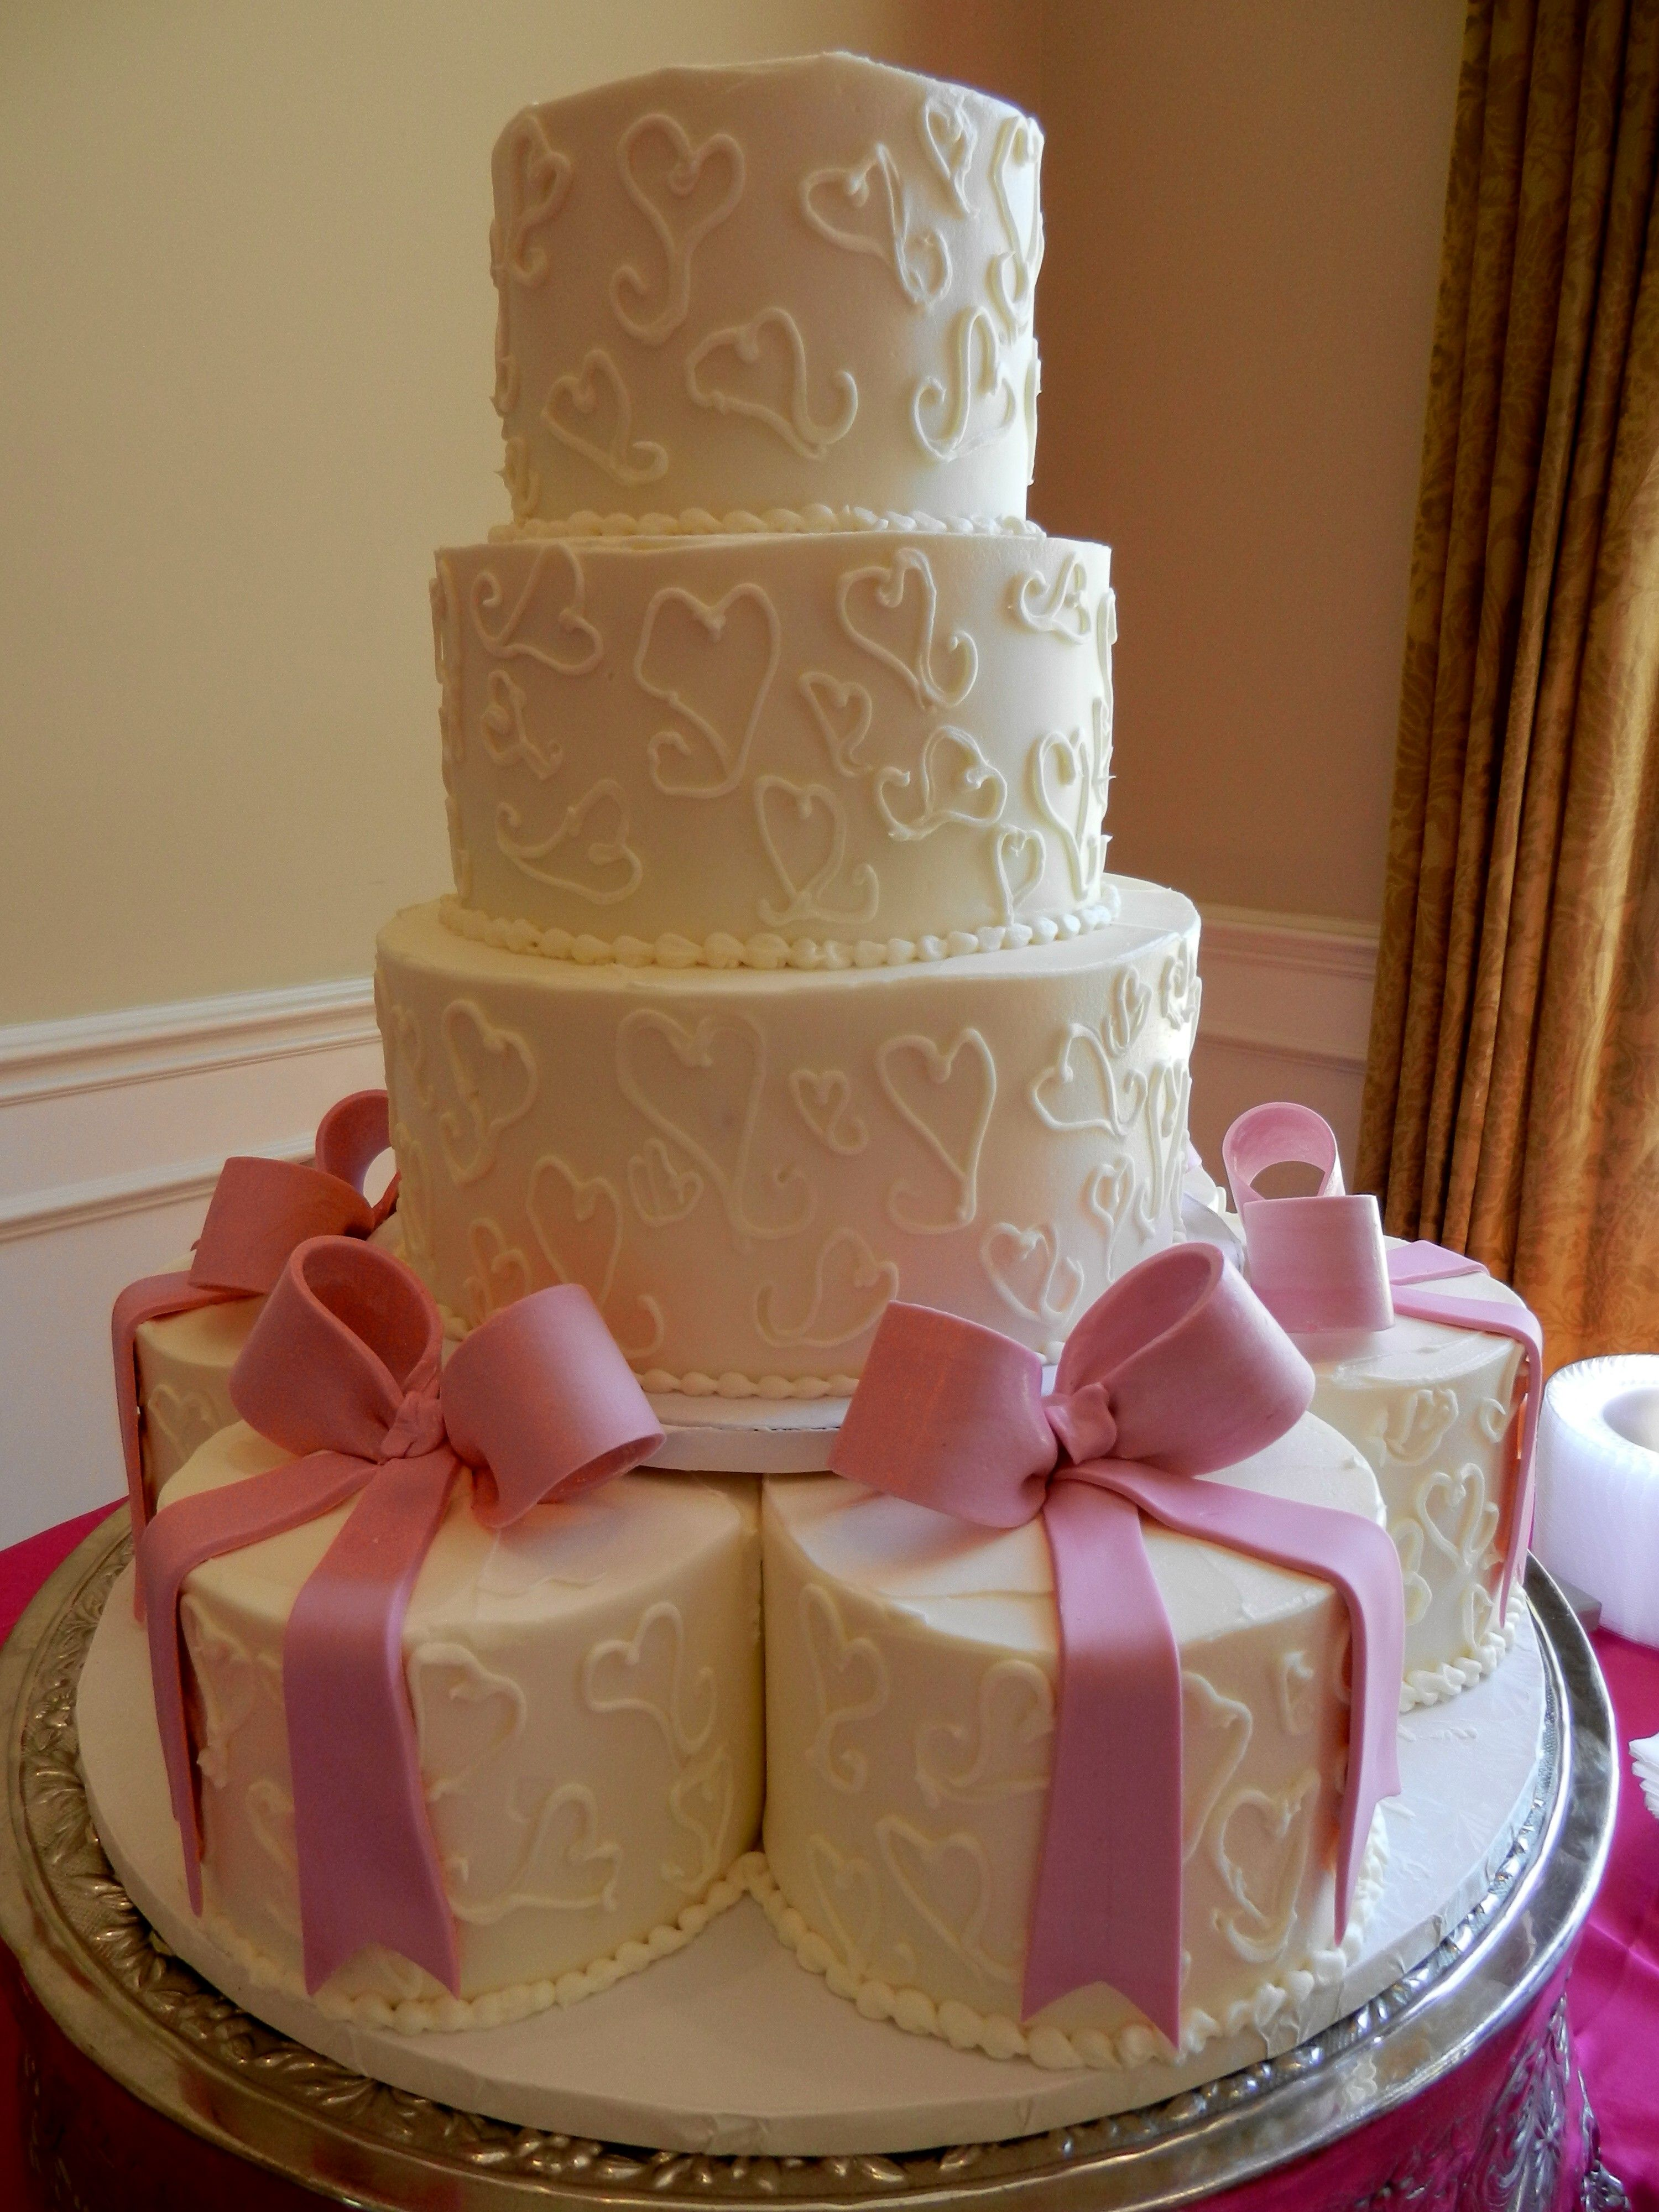 Charming Hearts And Bows Wedding Cake Www.cheesecakeetc.biz Wedding Cakes Charlotte  NC